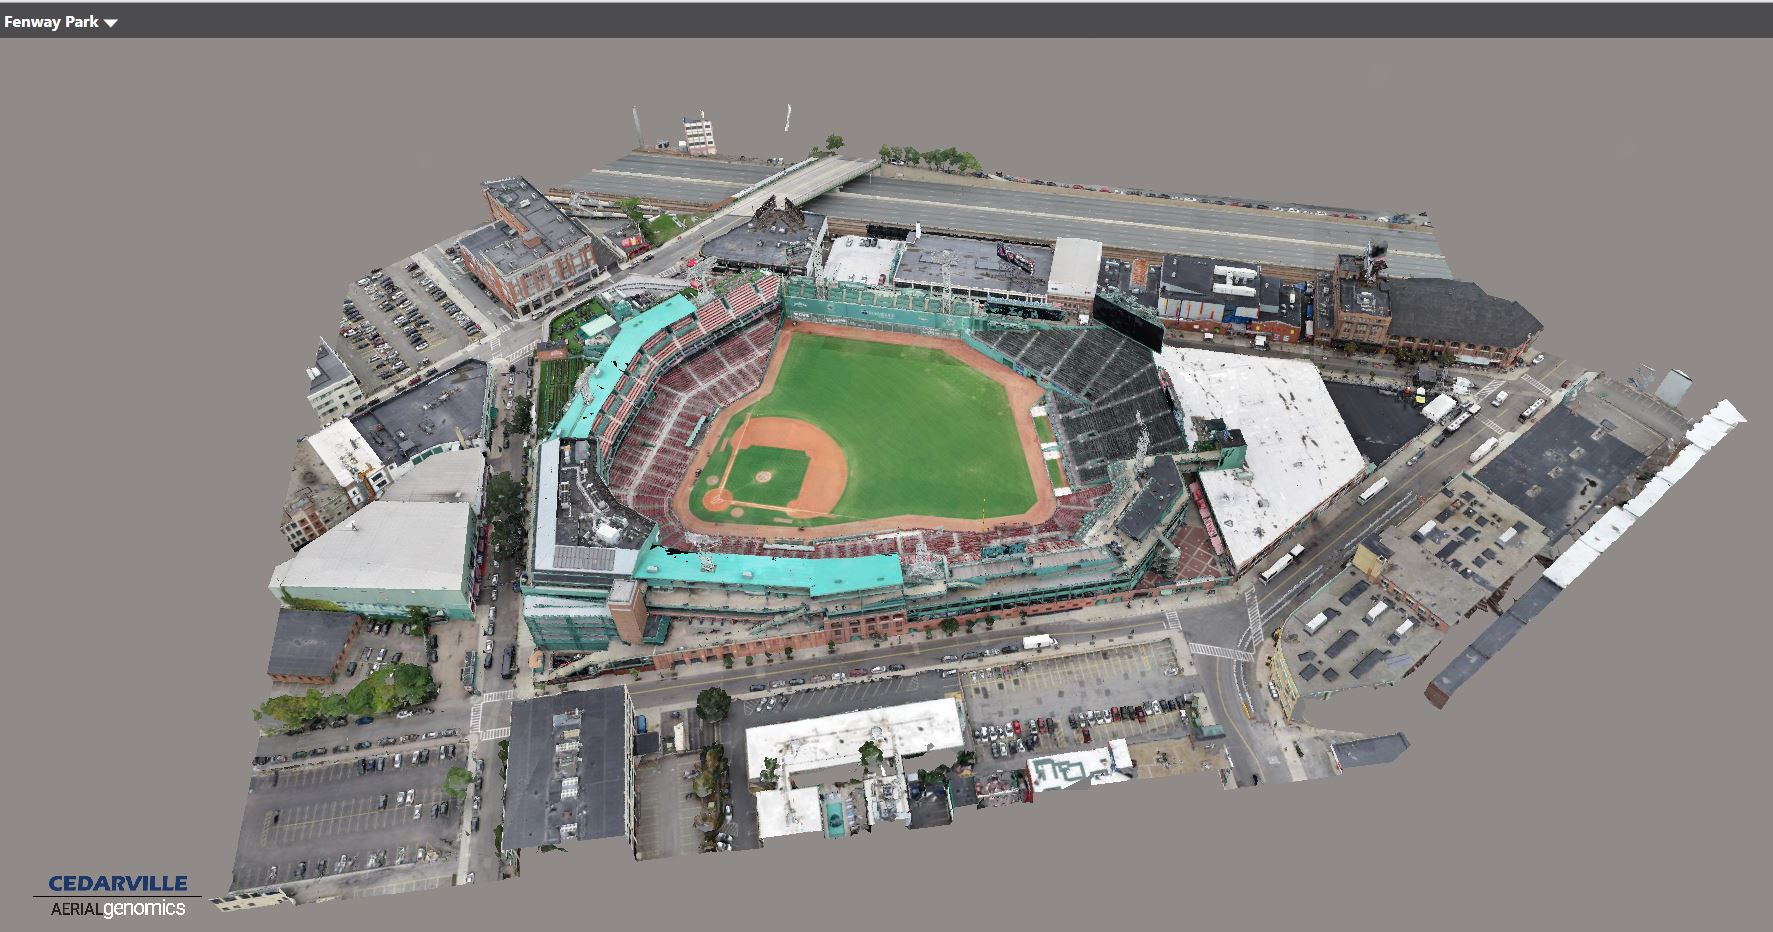 3D Model of Fenway Park